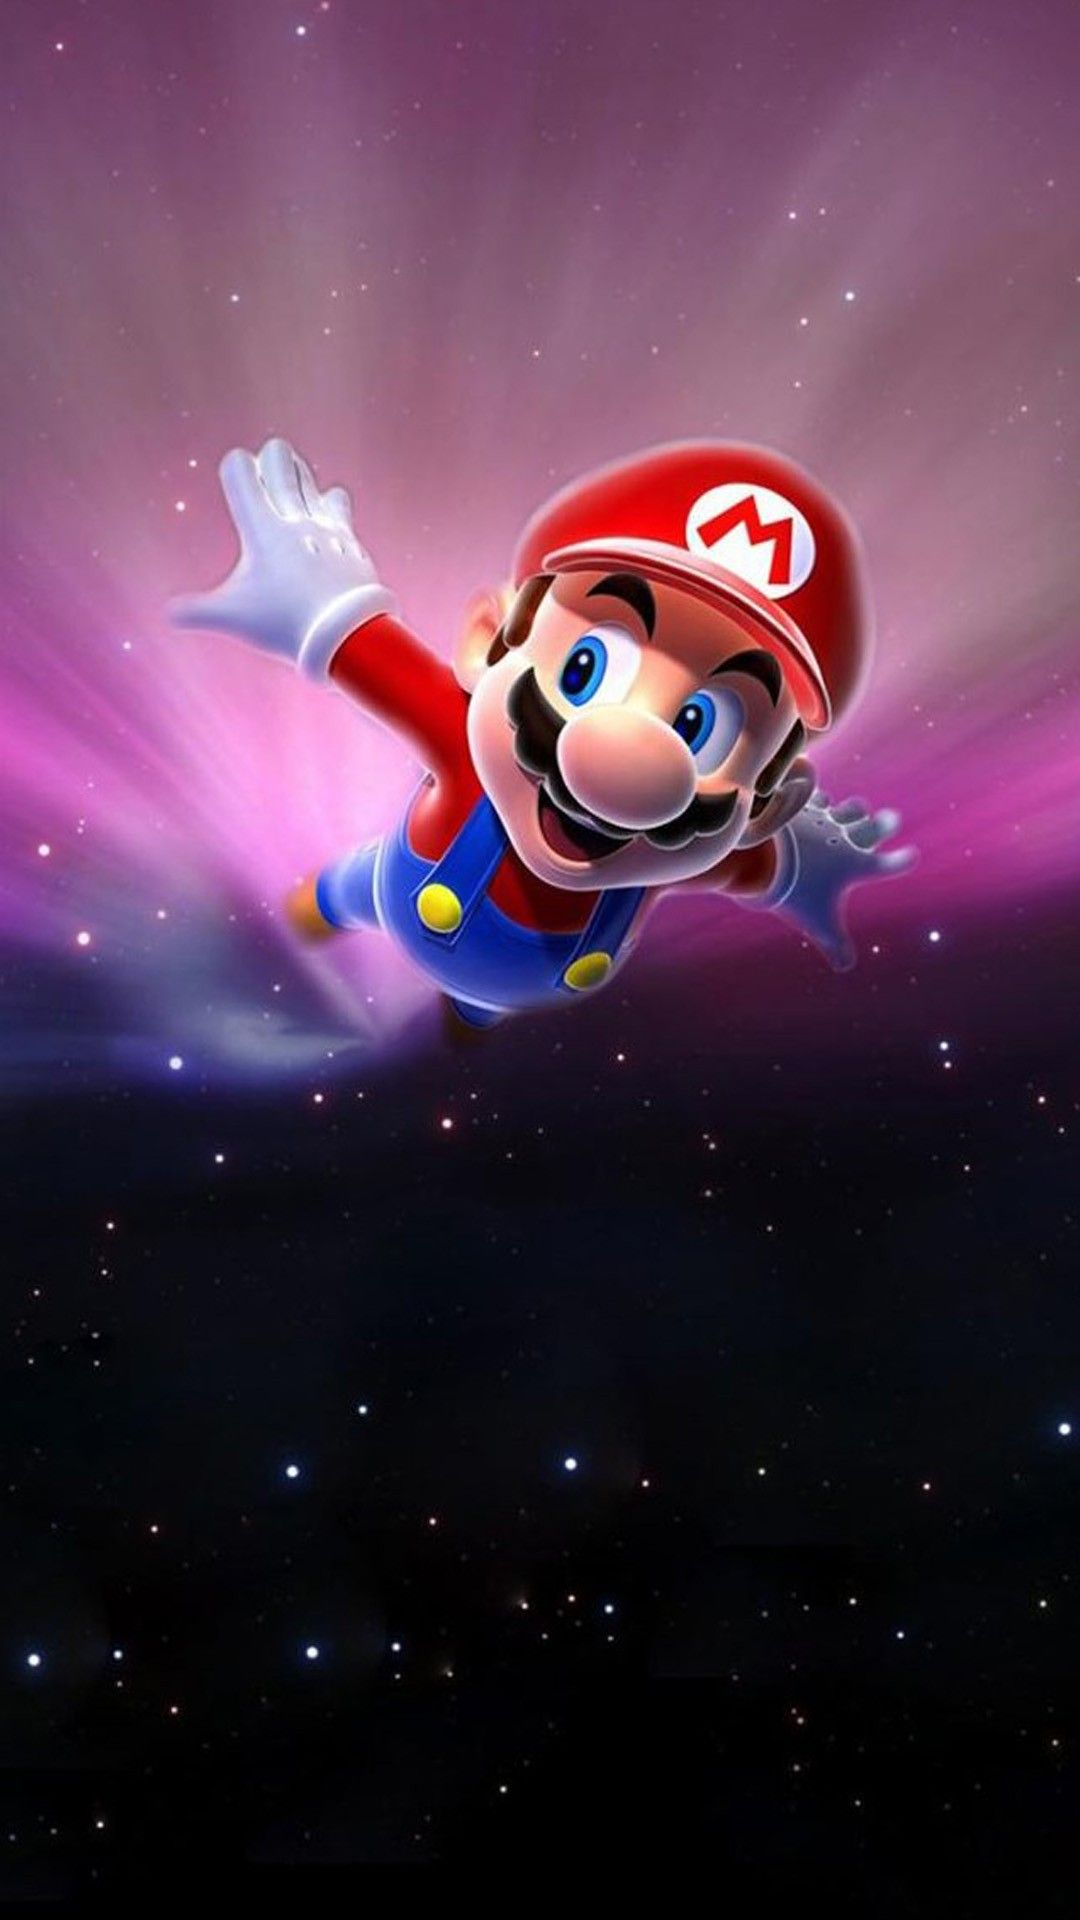 Super Mario Flying Poster Background Iphone 6 Plus Wallpaper Ilikewallpaper Com Android Wallpaper Cool Wallpapers For Phones Mario Art